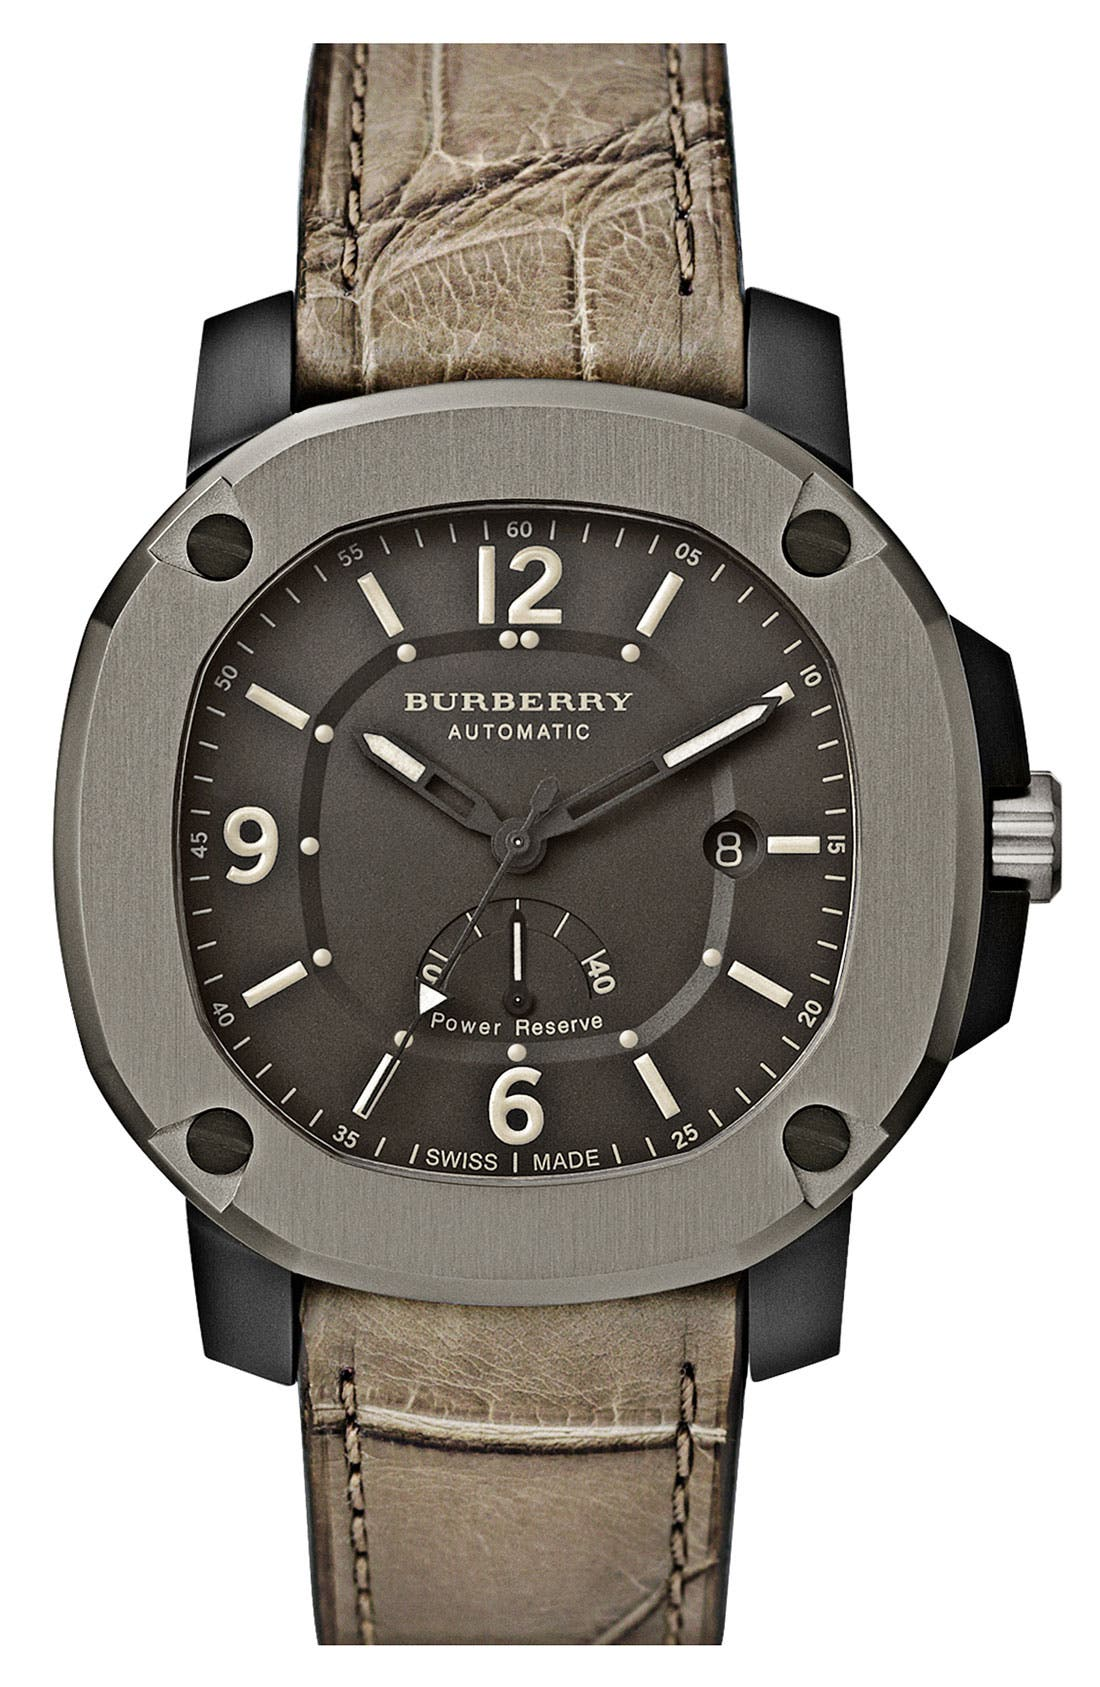 Main Image - Burberry The Britain Automatic Watch with Power Reserve